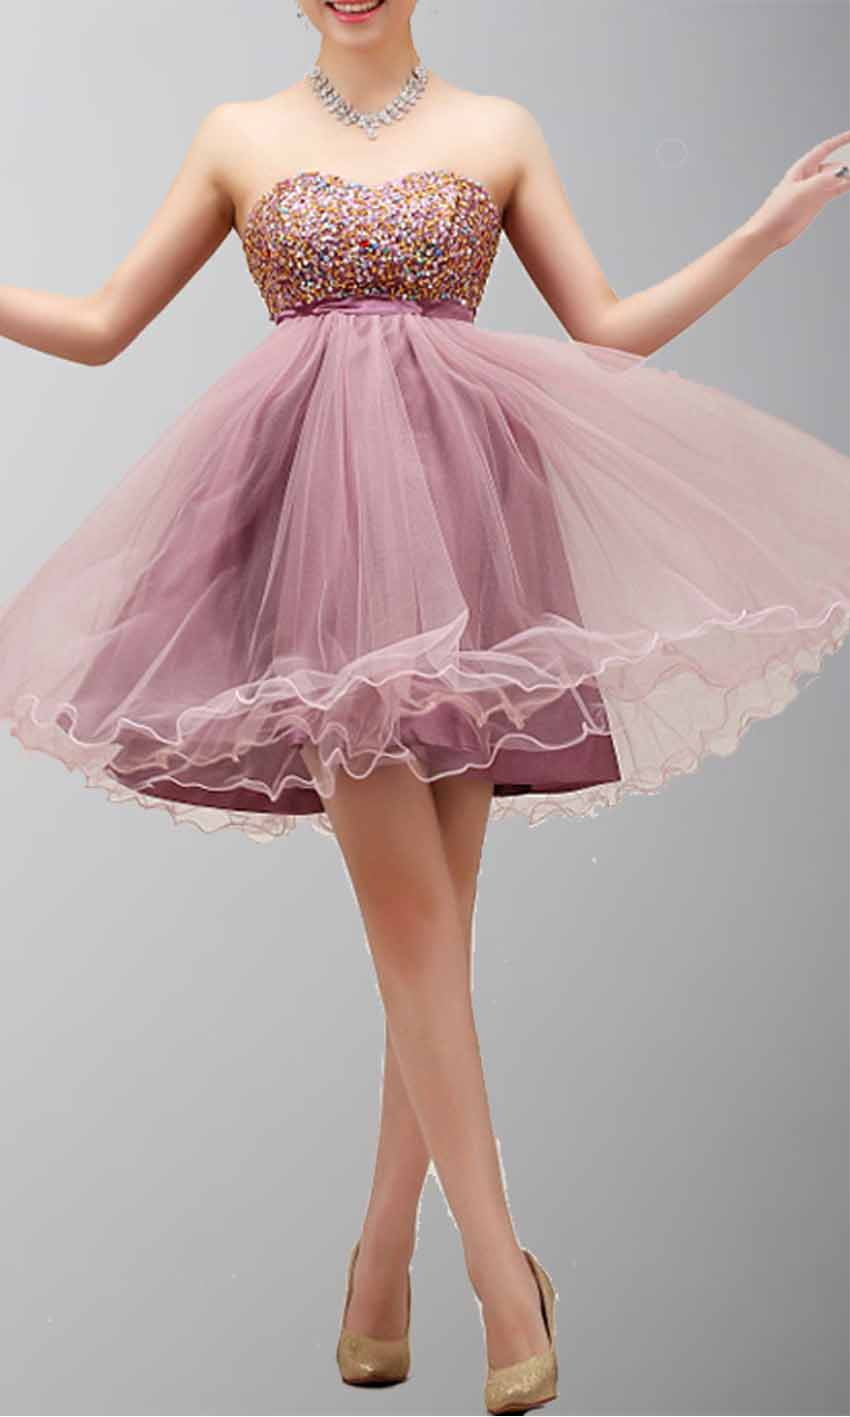 Short Strapless Lace Up Babydoll prom Dress KSP127 [KSP127] - £98.00 : Cheap Prom Dresses Uk, Bridesmaid Dresses, 2014 Prom & Evening Dresses, Look for cheap elegant prom dresses 2014, cocktail gowns, or dresses for special occasions? kissprom.co.uk offers various bridesmaid dresses, evening dress, free shipping to UK etc.